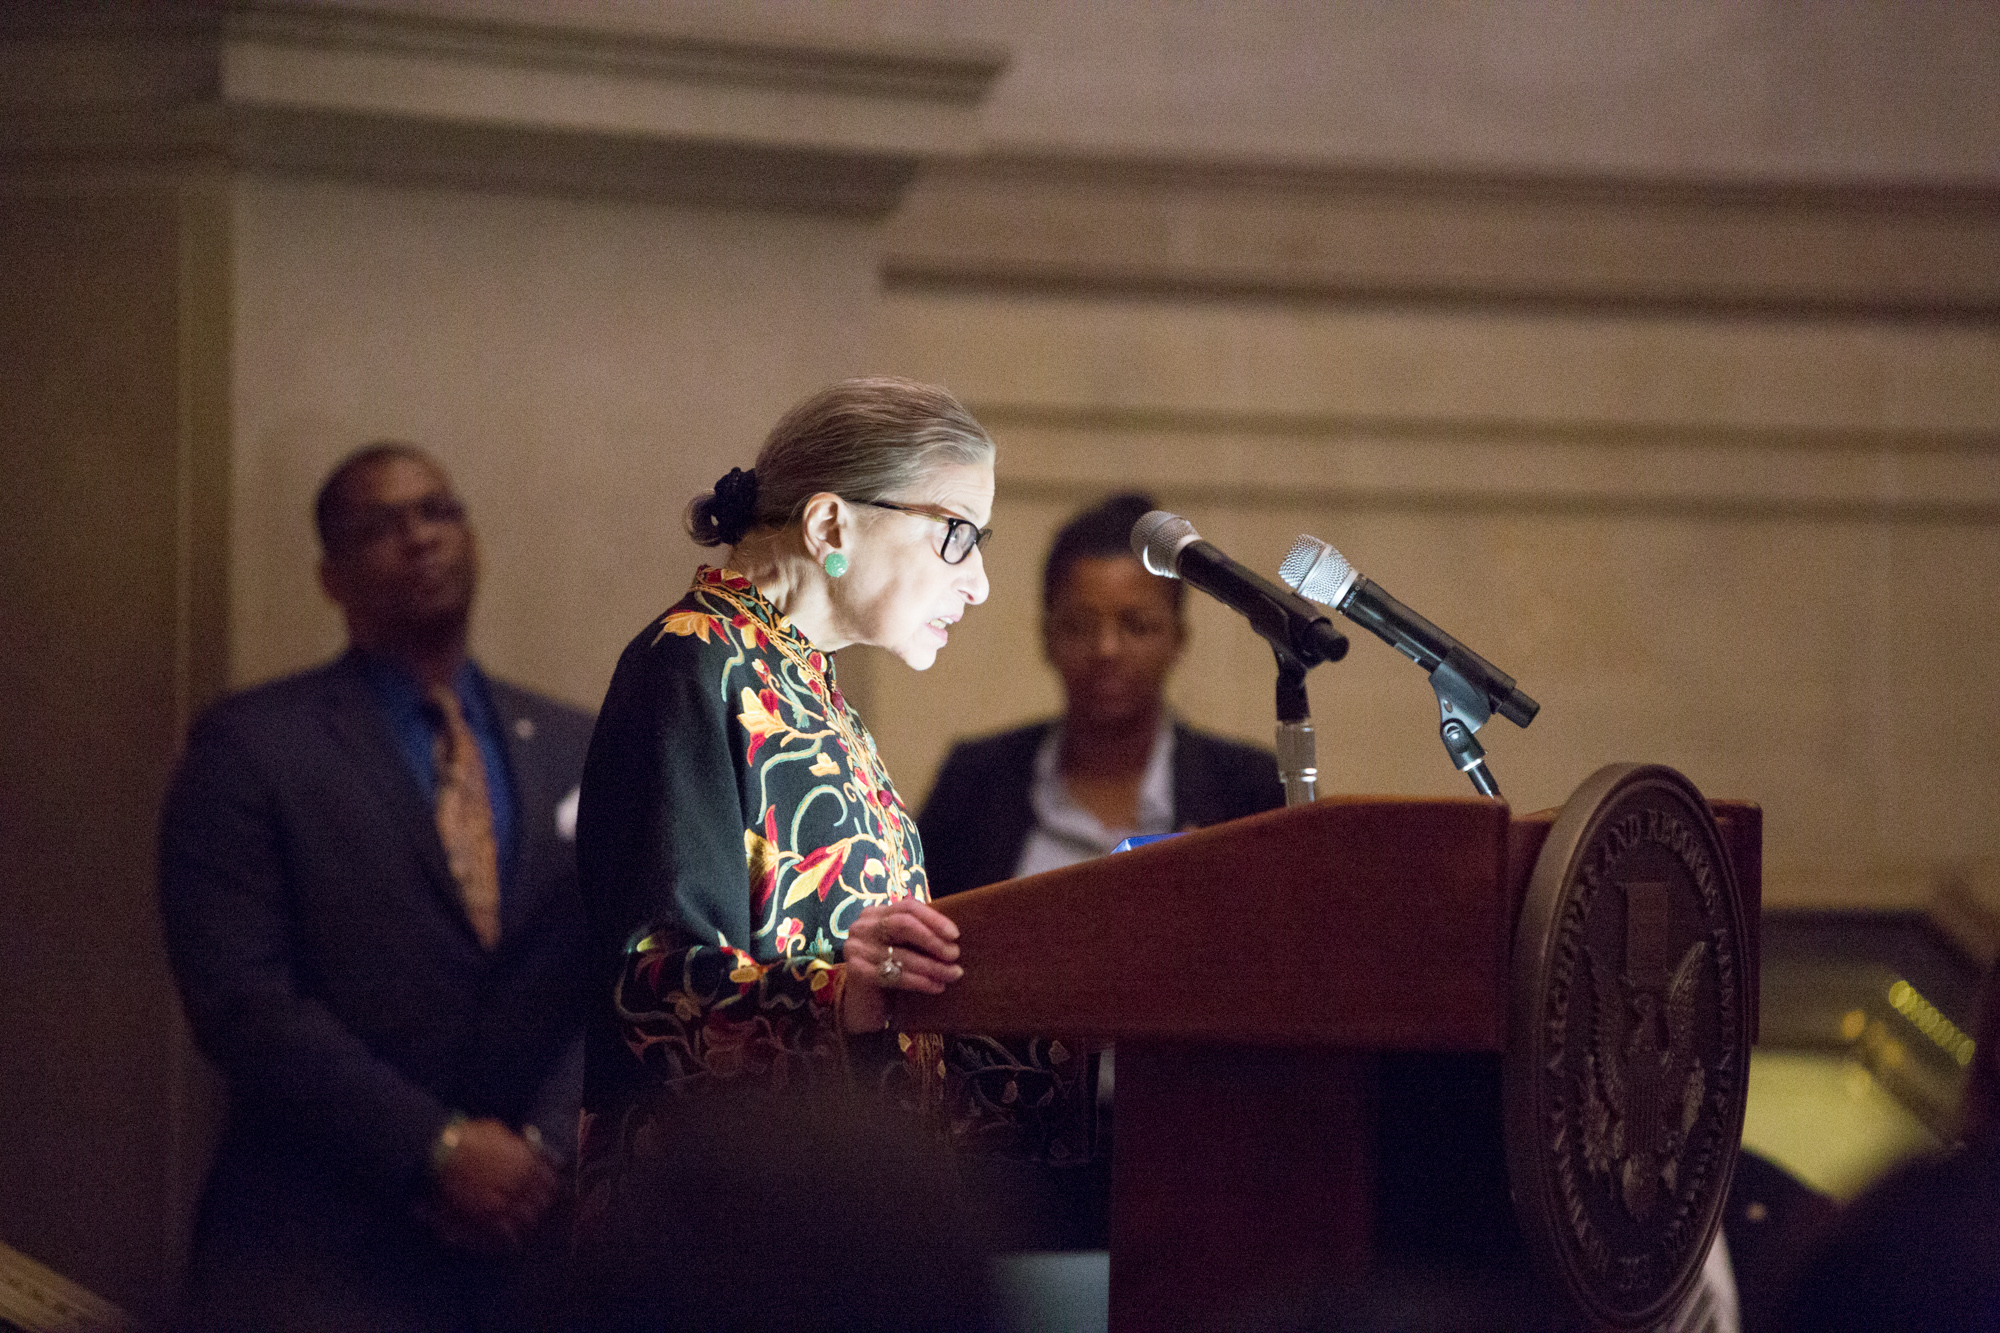 Ruth Bader Ginsberg, who participated in a conversation session at the event.